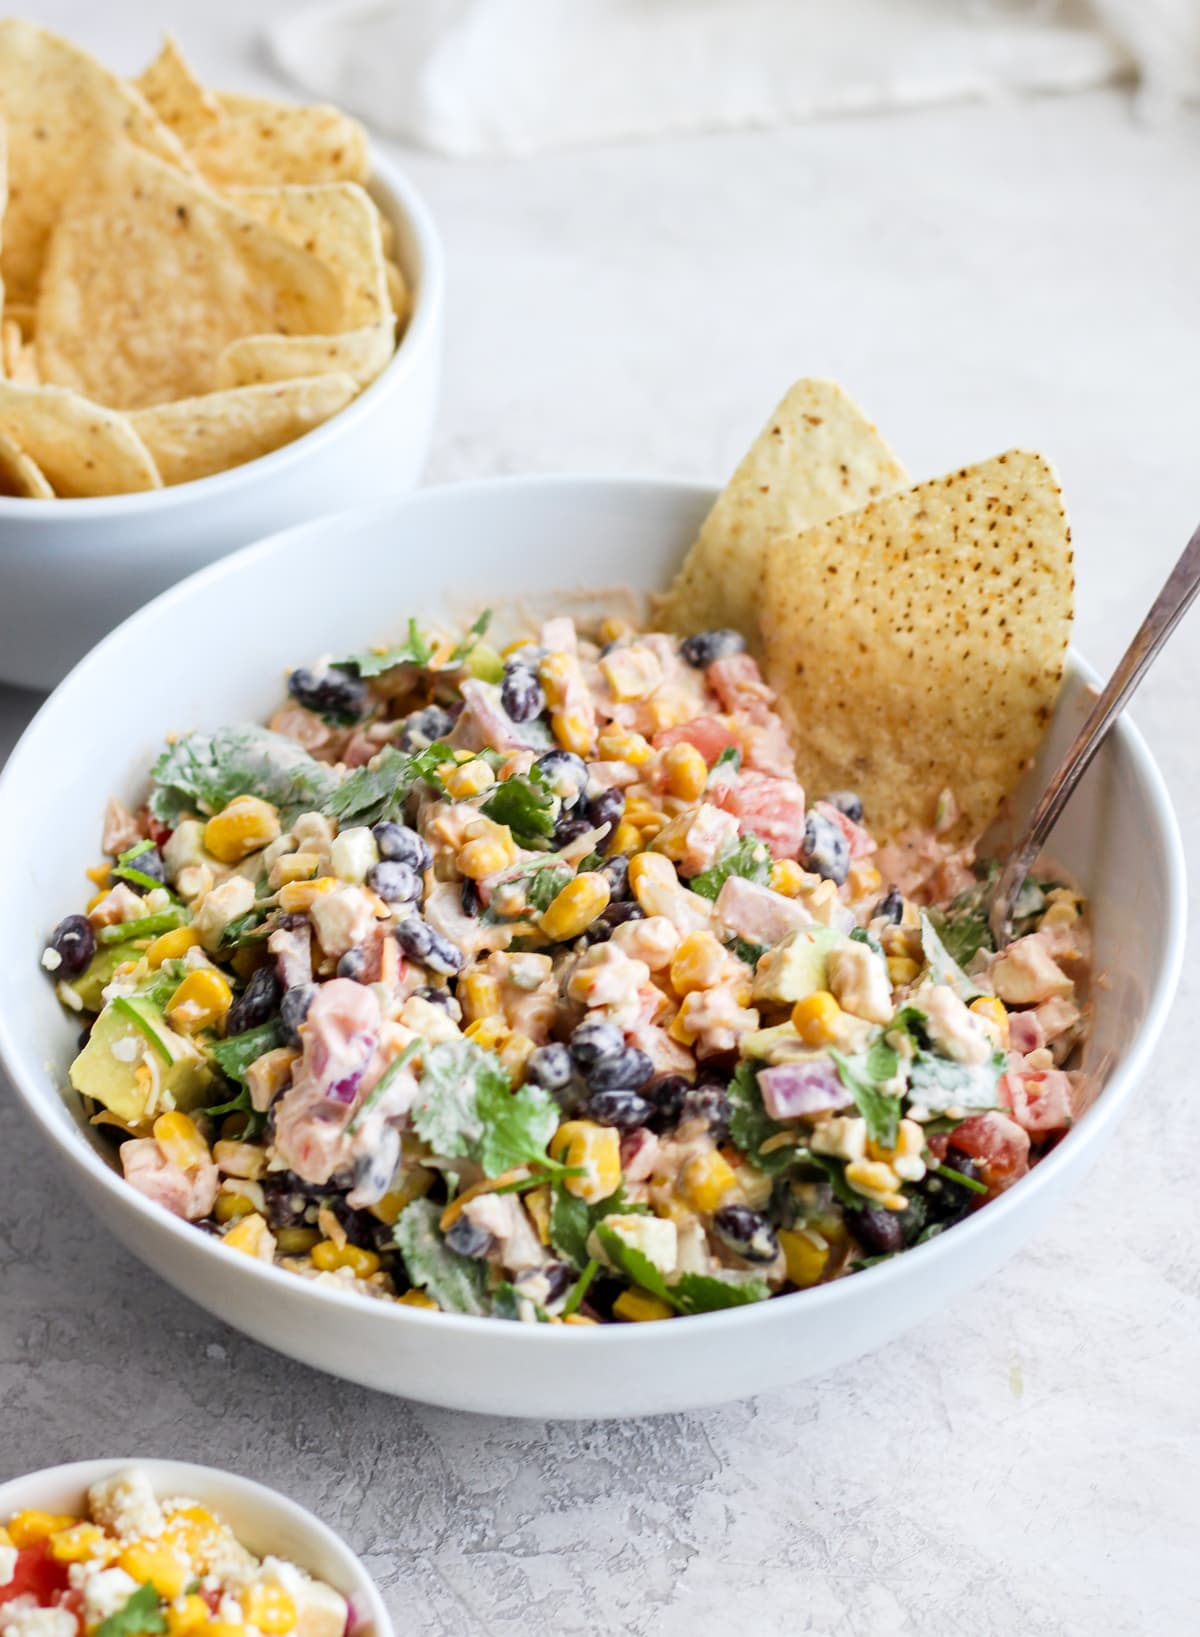 fiesta dip in a white bowl with two tortilla chips dipped in, next to a smaller bowl filled with chips